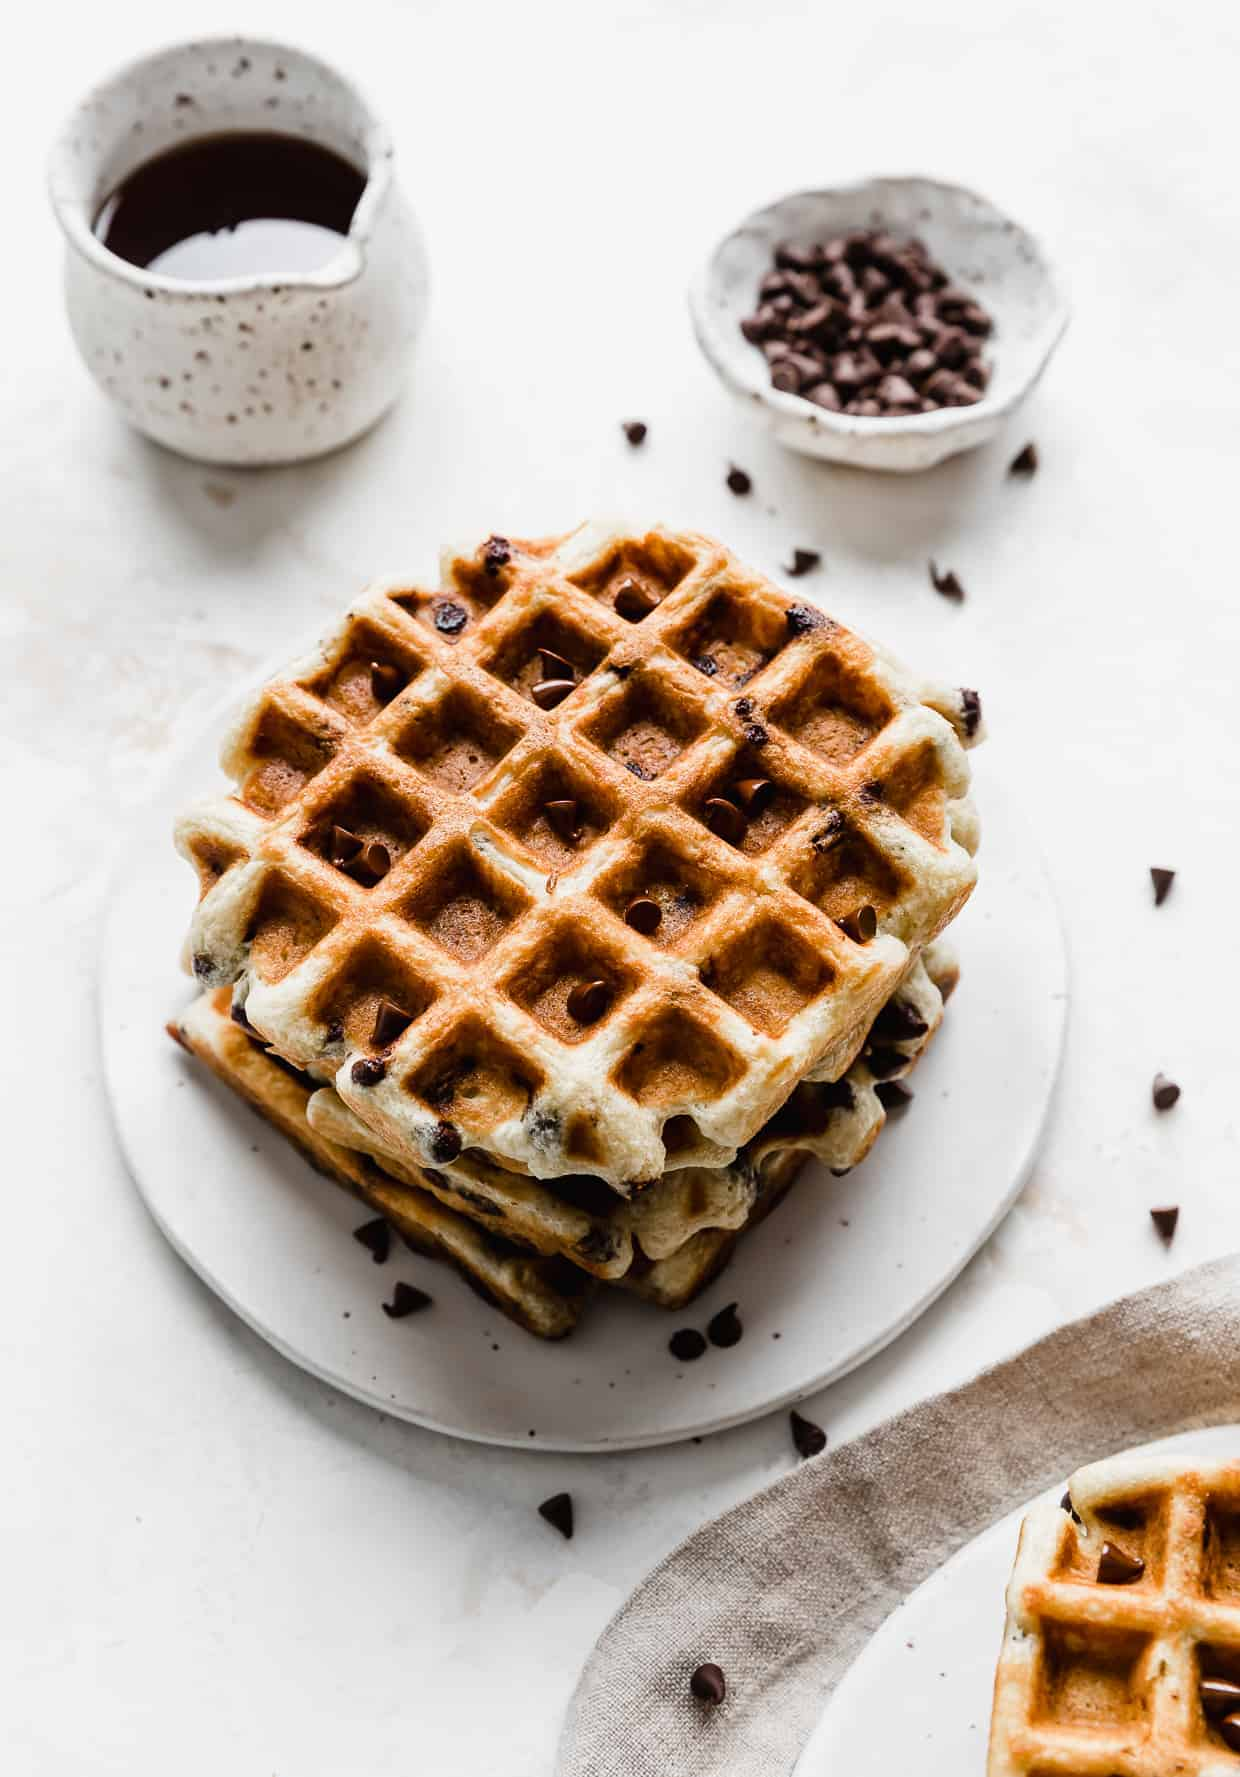 A stack of square Chocolate Chip Waffles on a white plate with syrup in the background.